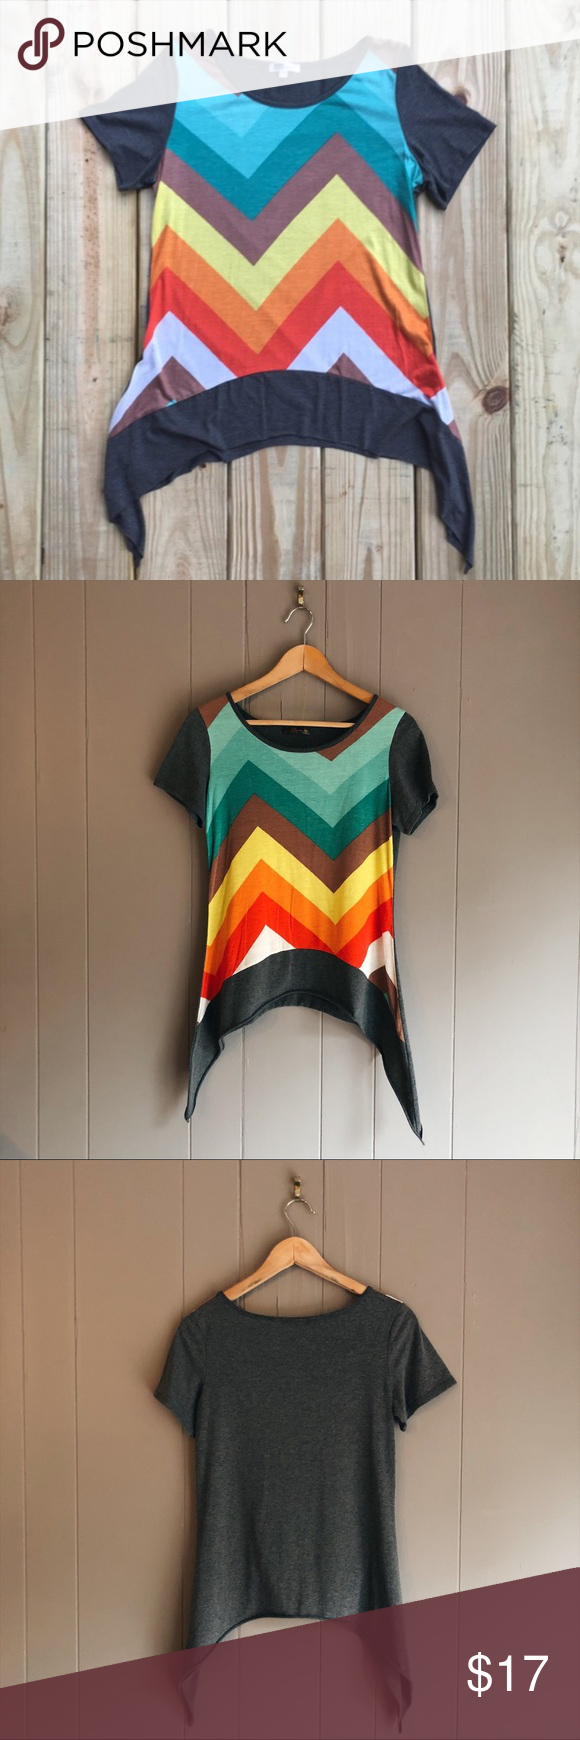 Rainbow Chevron Shark-bite Hem Tee Very cute and colorful T-shirt in excellent condition. Solid char...